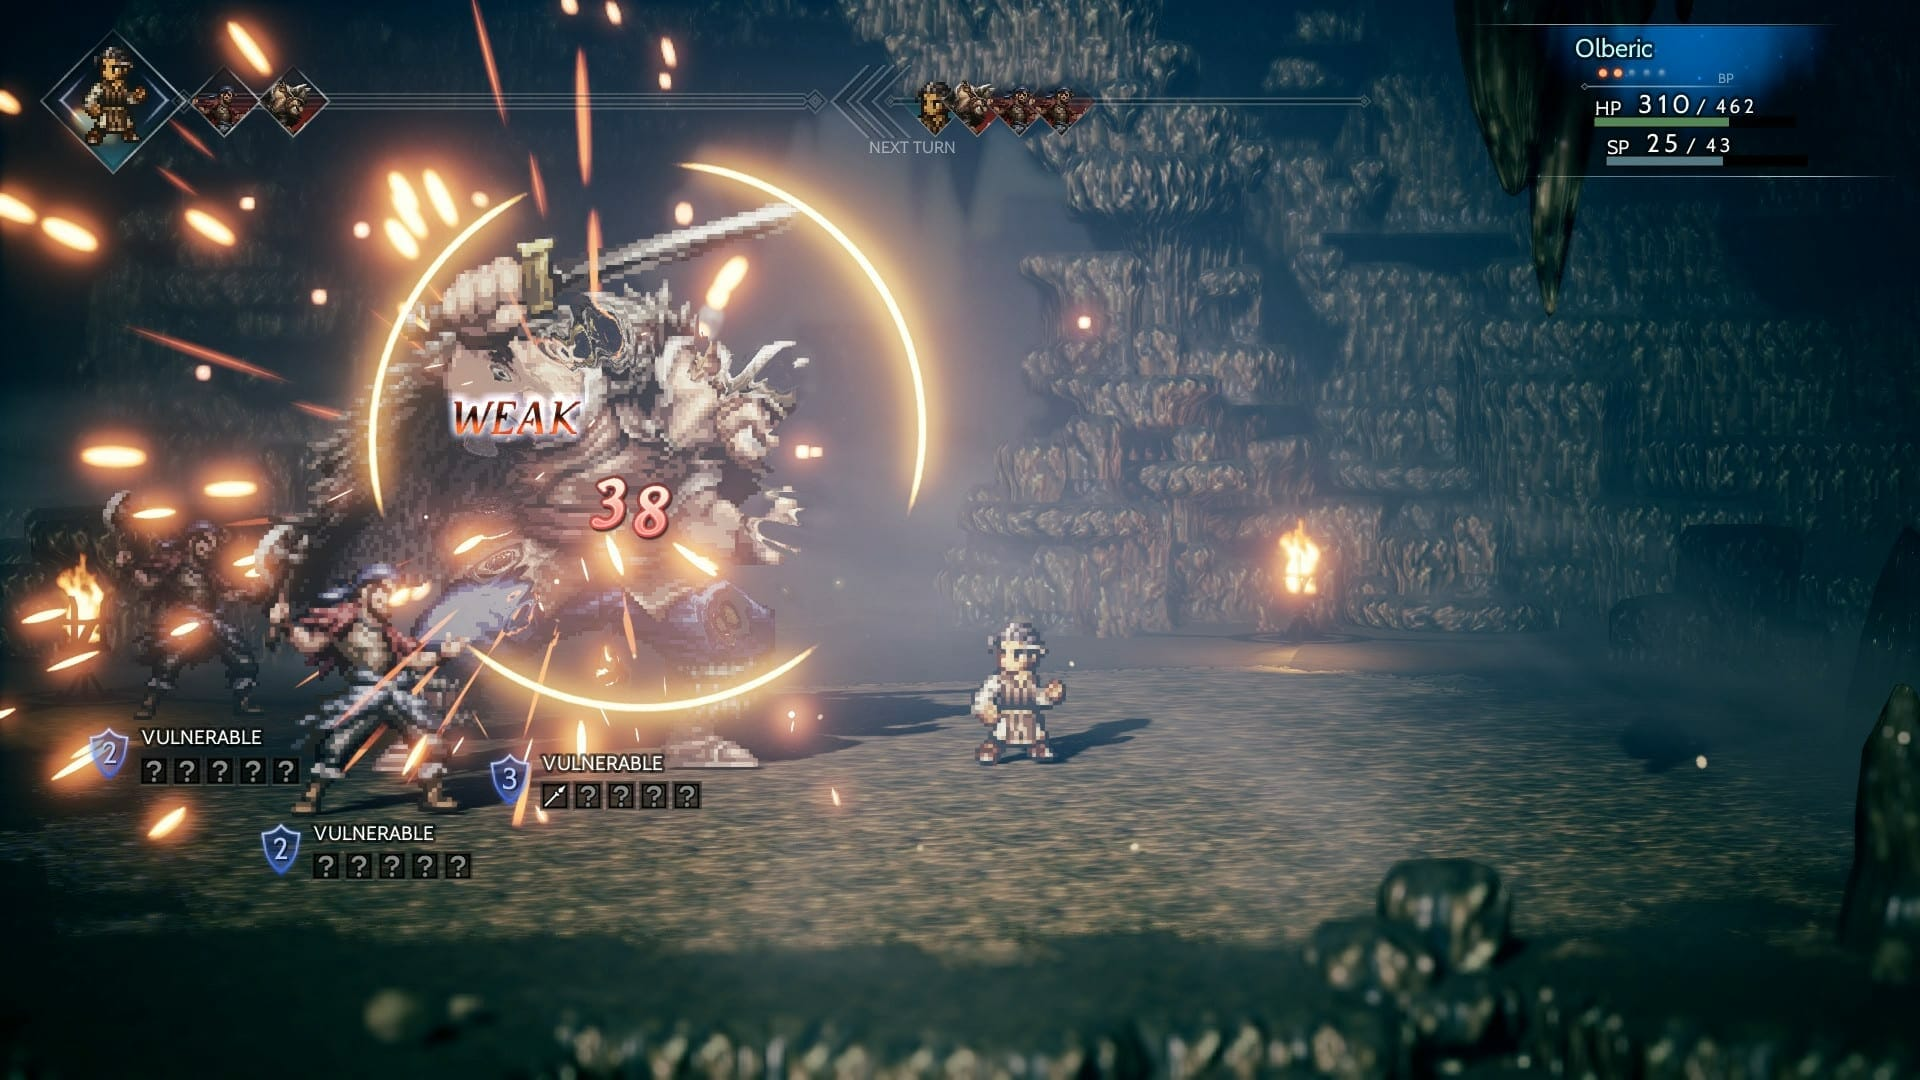 Depth of Field in Octopath Traveler